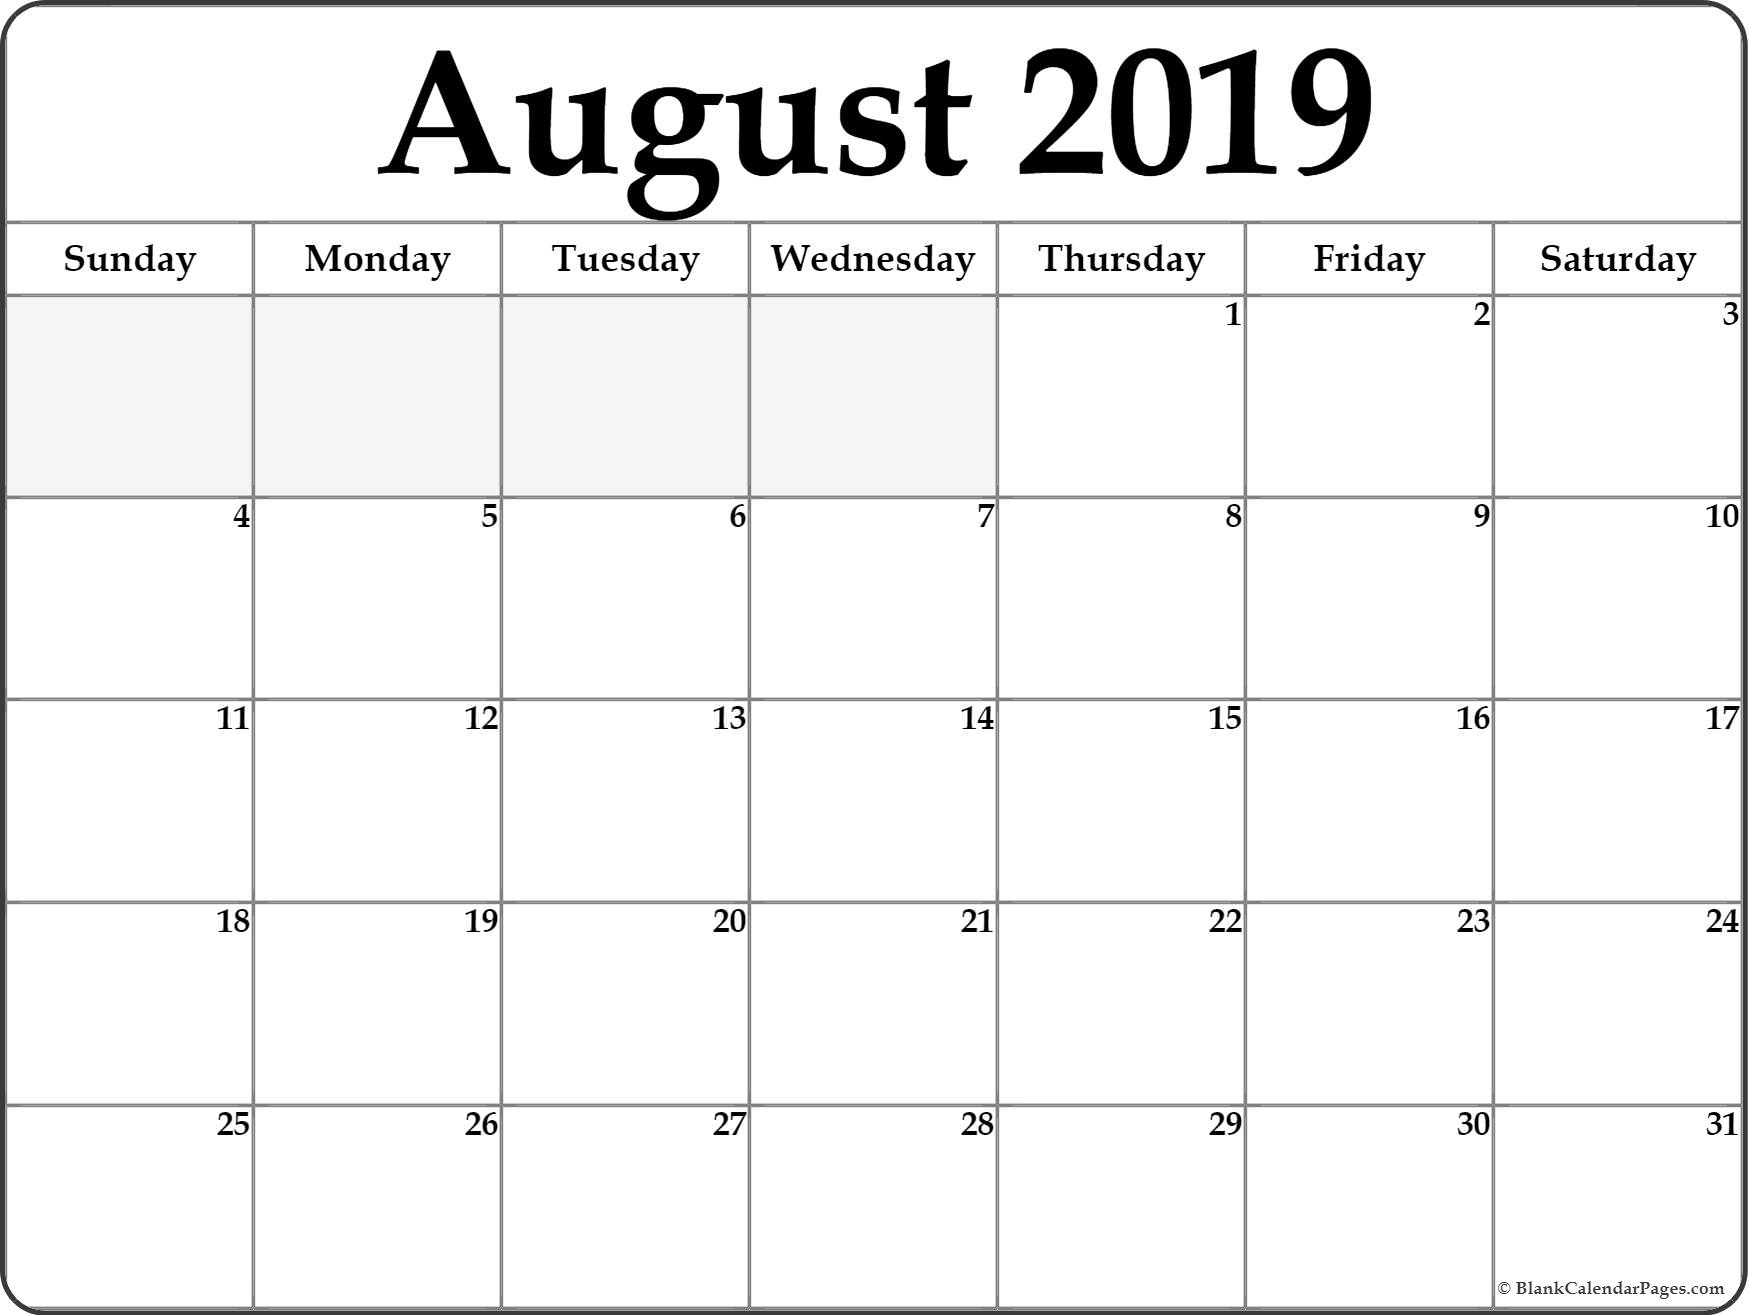 August 2019 Calendar | Free Printable Monthly Calendars inside August Blank Calendar Pages